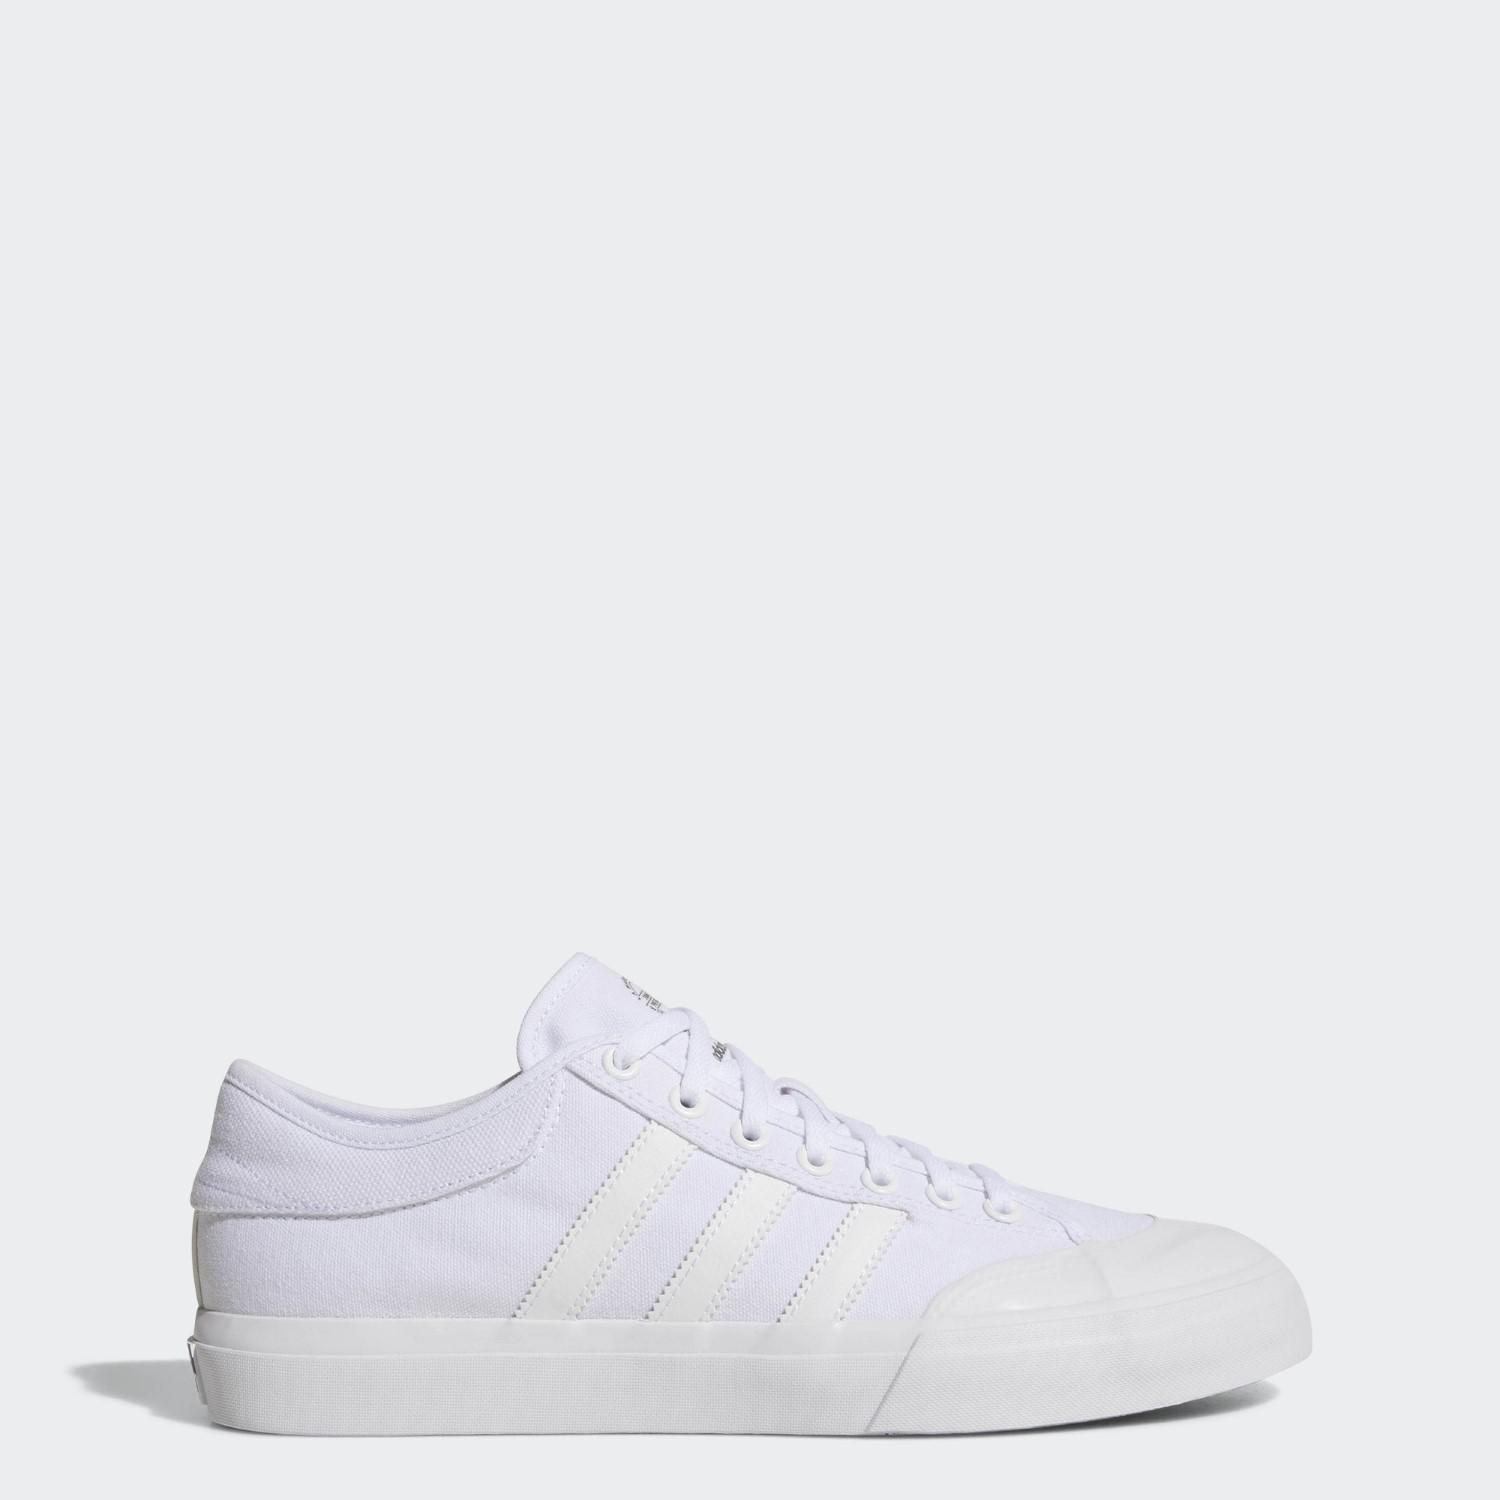 adidas matchcourt skate shoes